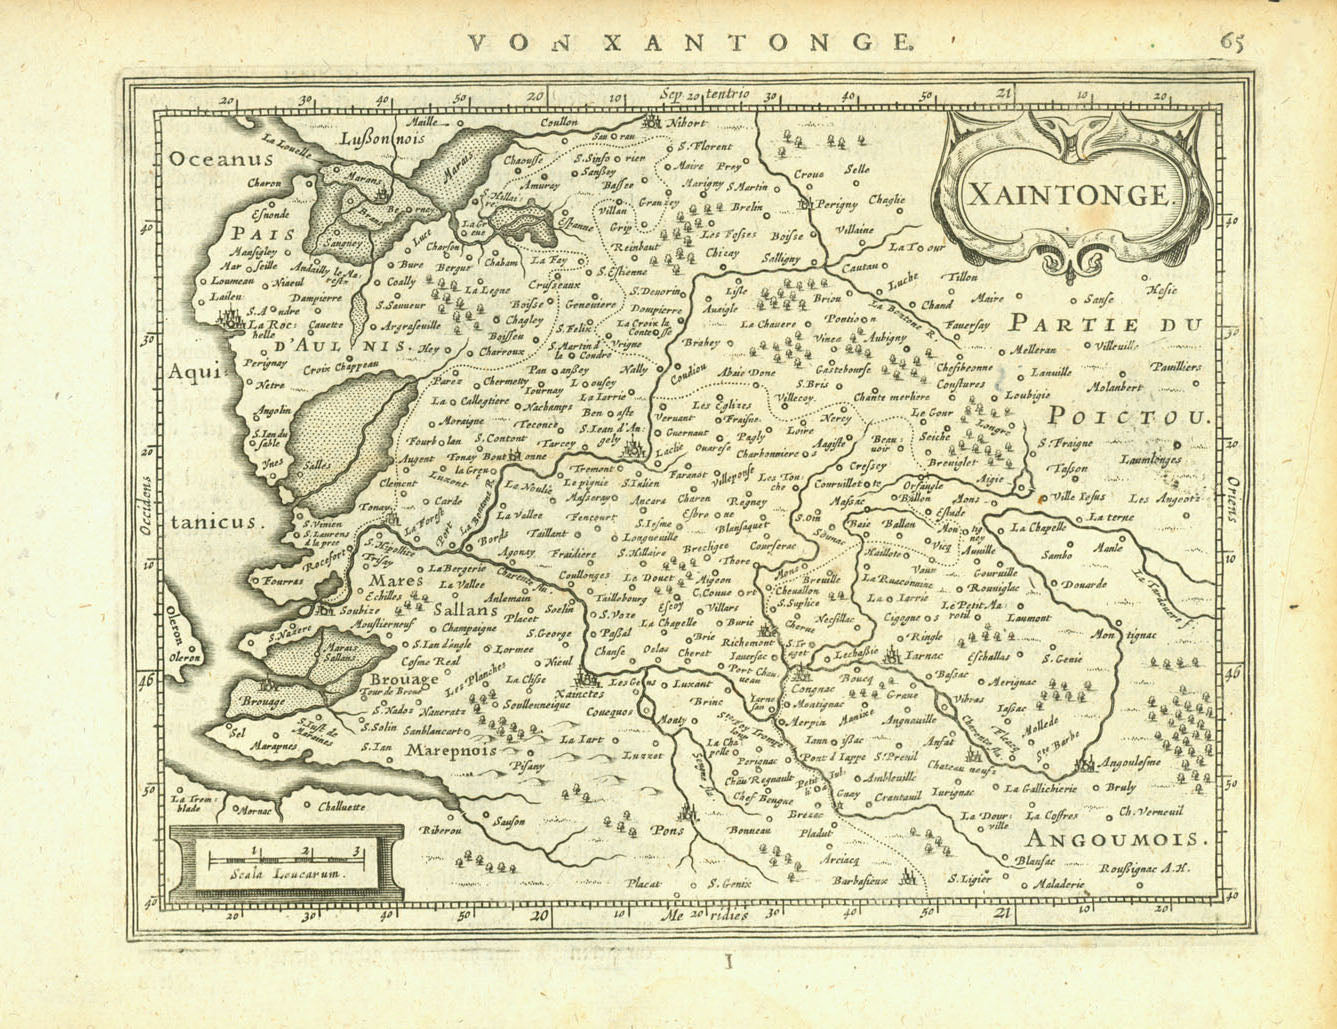 """Von Xantonge"" ""Xaintonge""  Copper engraving map from ""Atlas Minor: Das ist: Eine kurze jedoch gründliche Beschreibung der gantzen Welt in Zwei Theile abgebildet"" by Jan Jansson, 1651.  On the reverse side is text ( in German ) about Xaintonge."